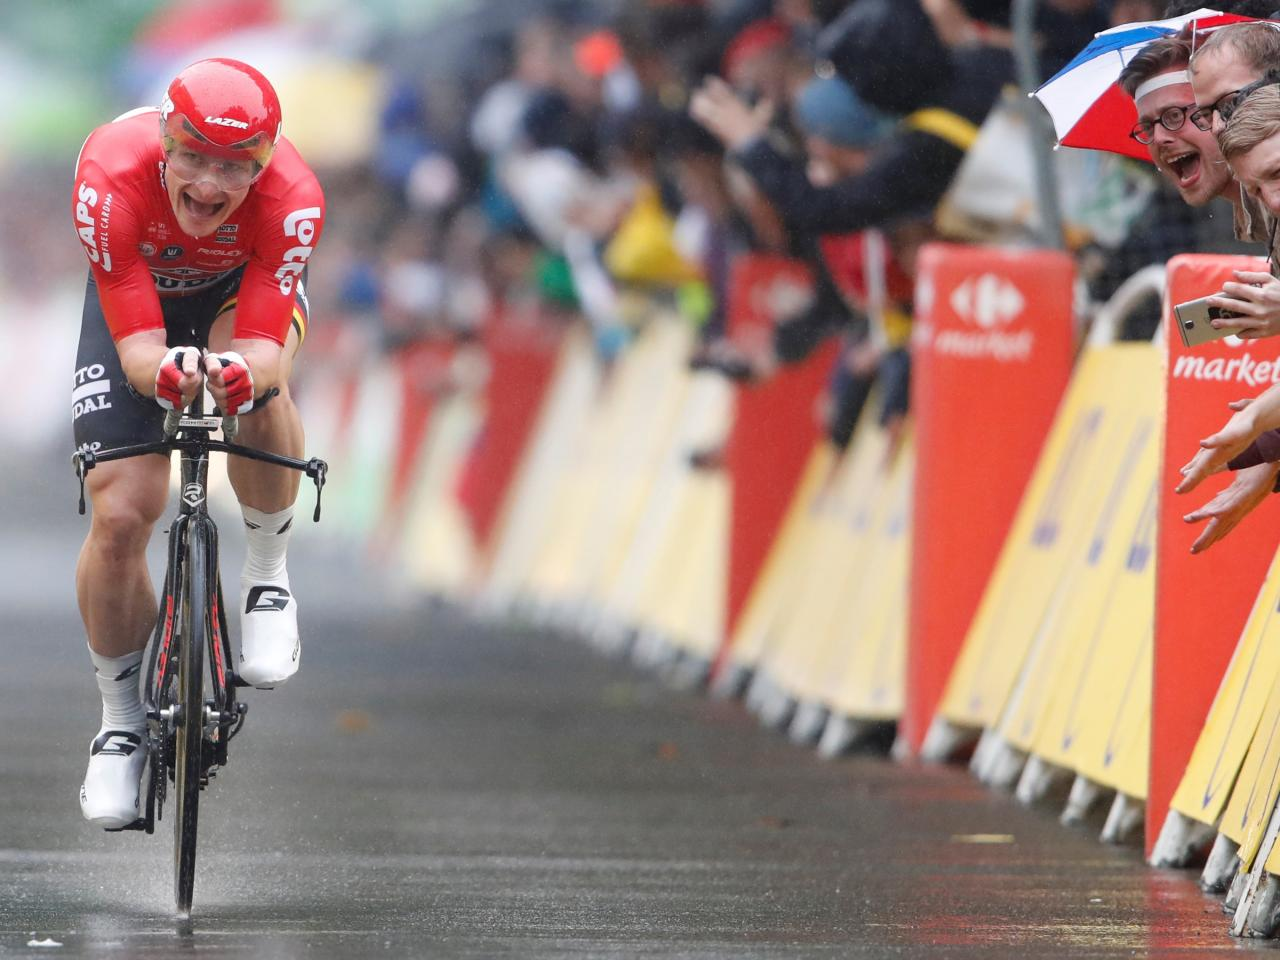 Andre Greipel won the final sprint on the Champs-Elysees in 2015 and 2016